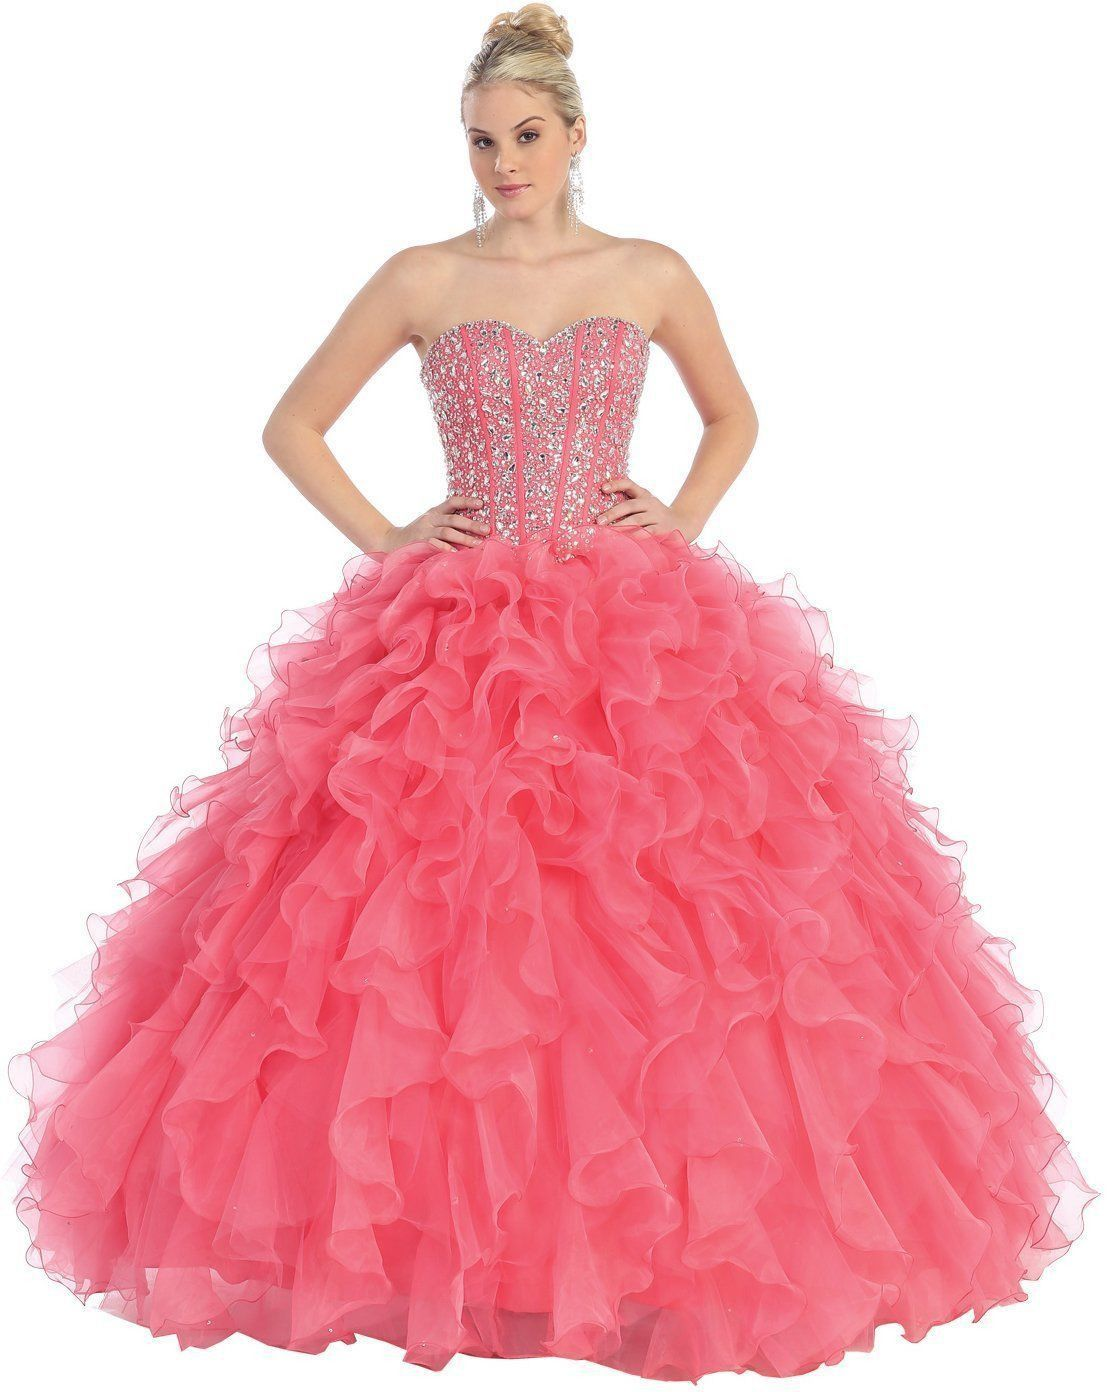 Quinceanera Long Ballgown Formal Prom Dresses | Pinterest | Vestido ...